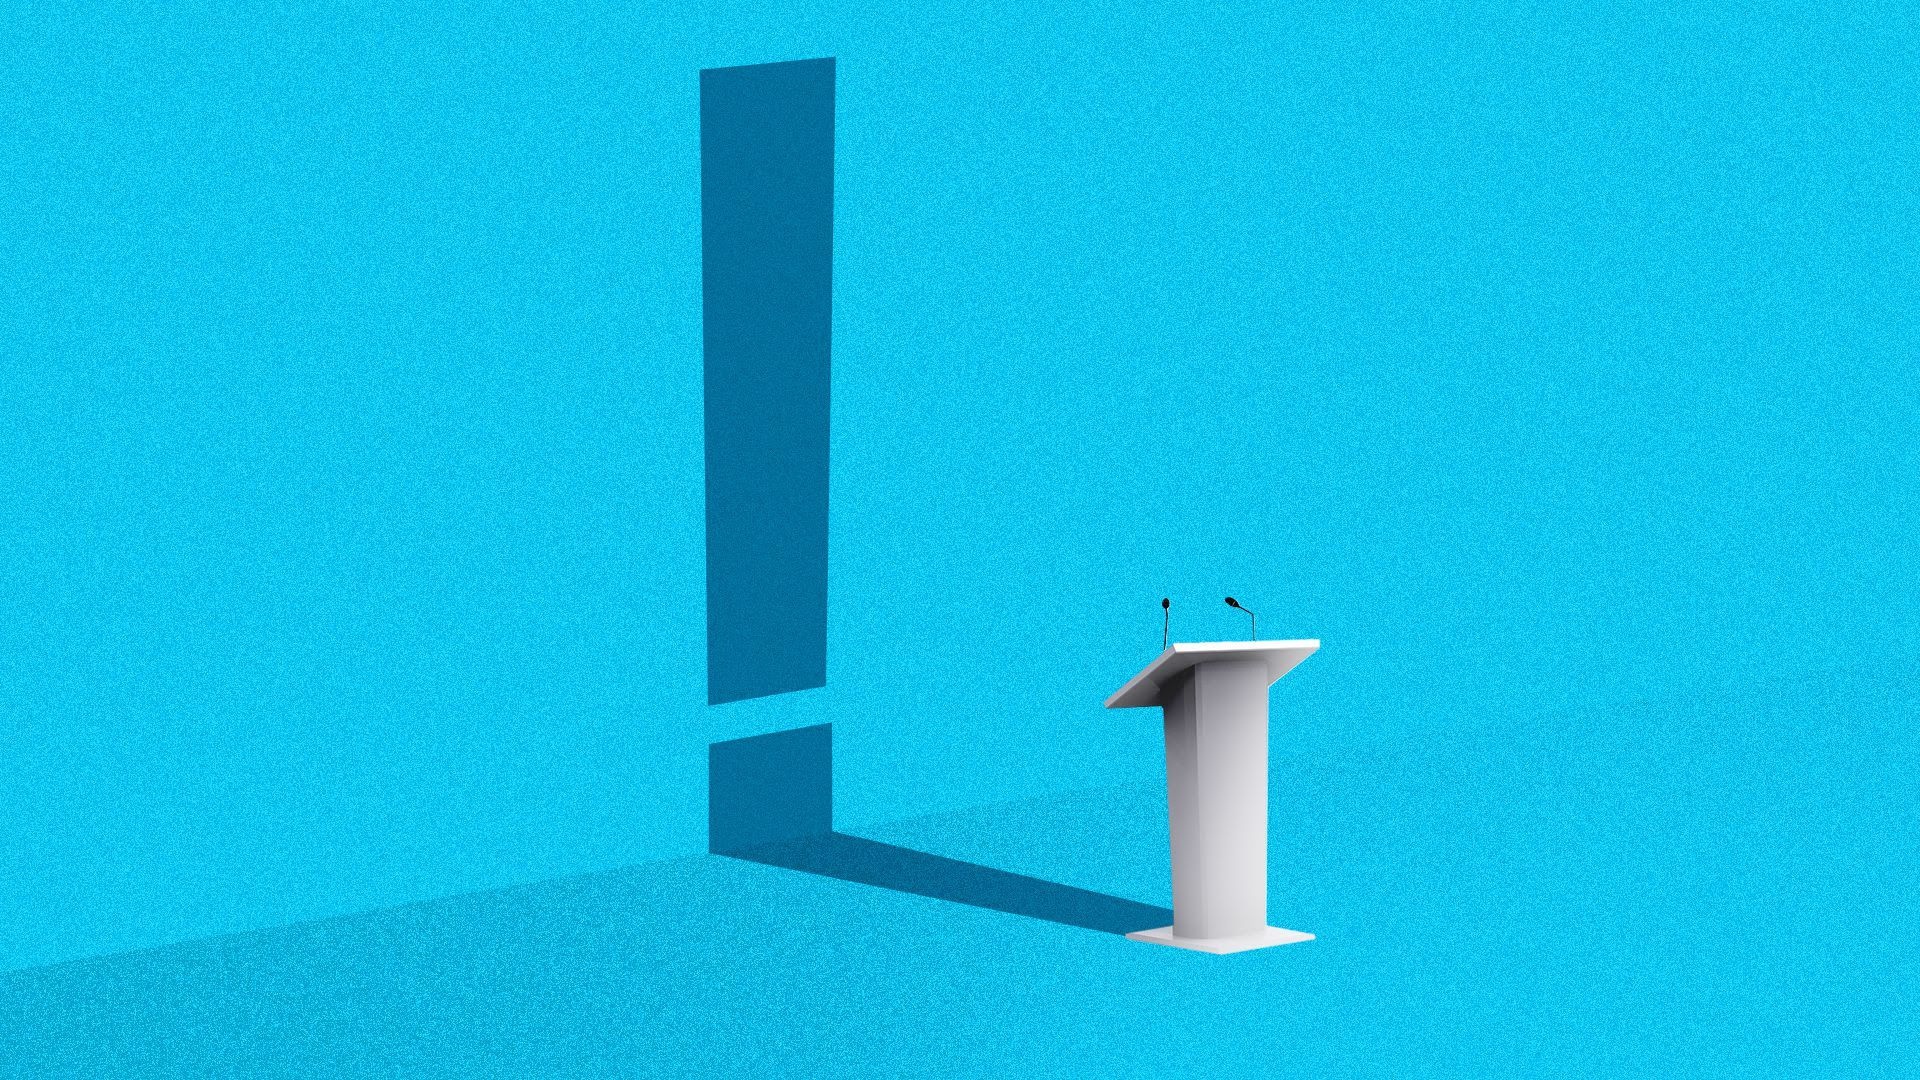 A debate lectern with the shadow of an exclamation point behind it